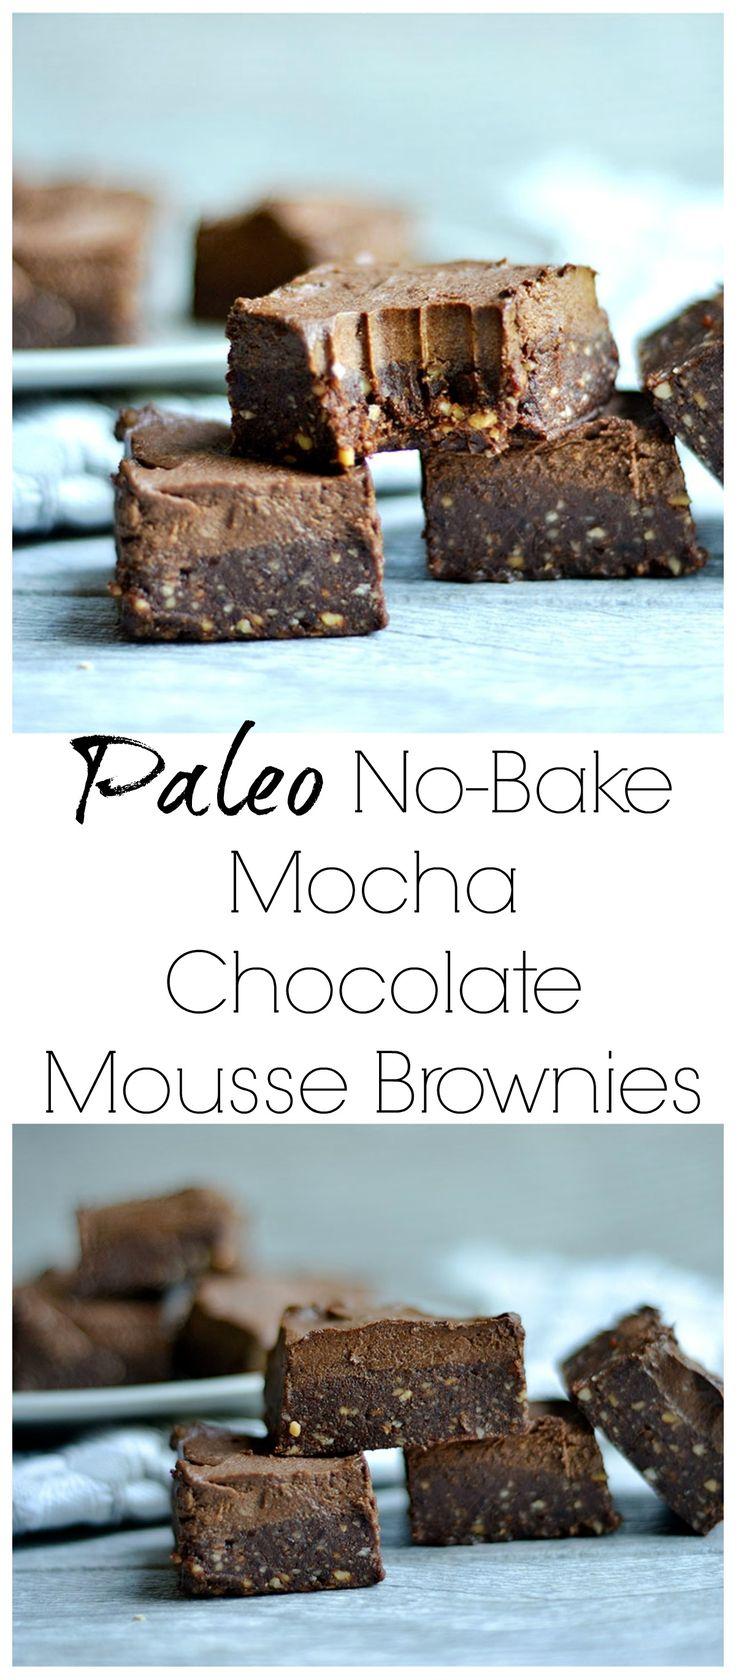 These raw layered brownies are a delicious treat without the guilt! Refined sugar-free, Vegan, Raw, Paleo, and so delicious!